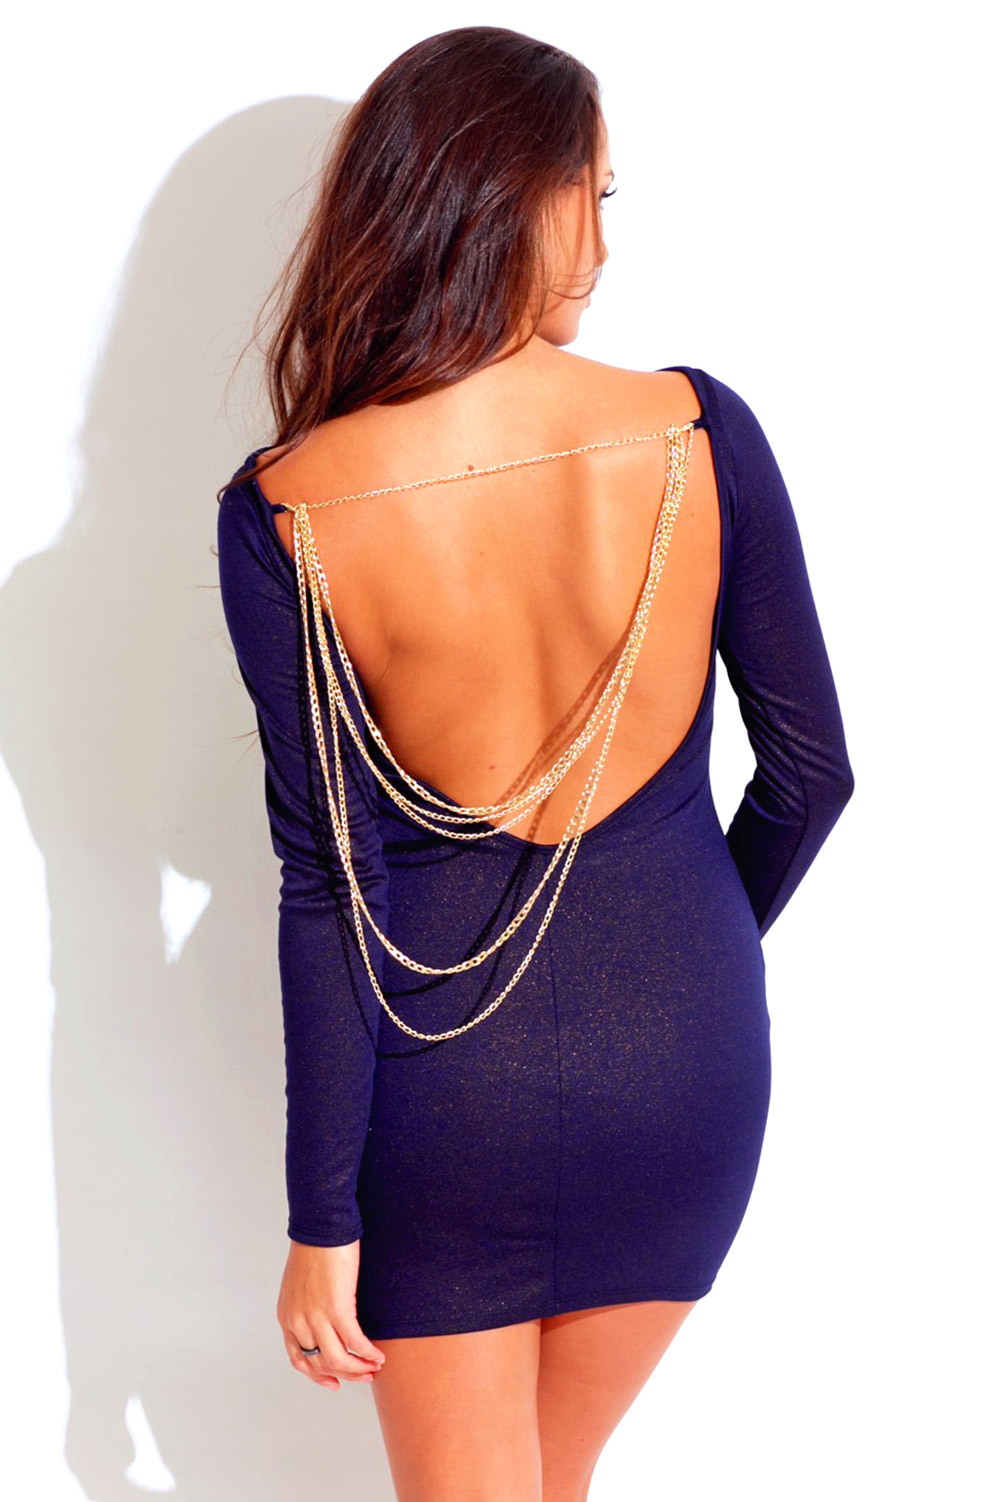 Midnight navy blue long sleeve backless bejeweled metallic fitted bodycon club mini dress